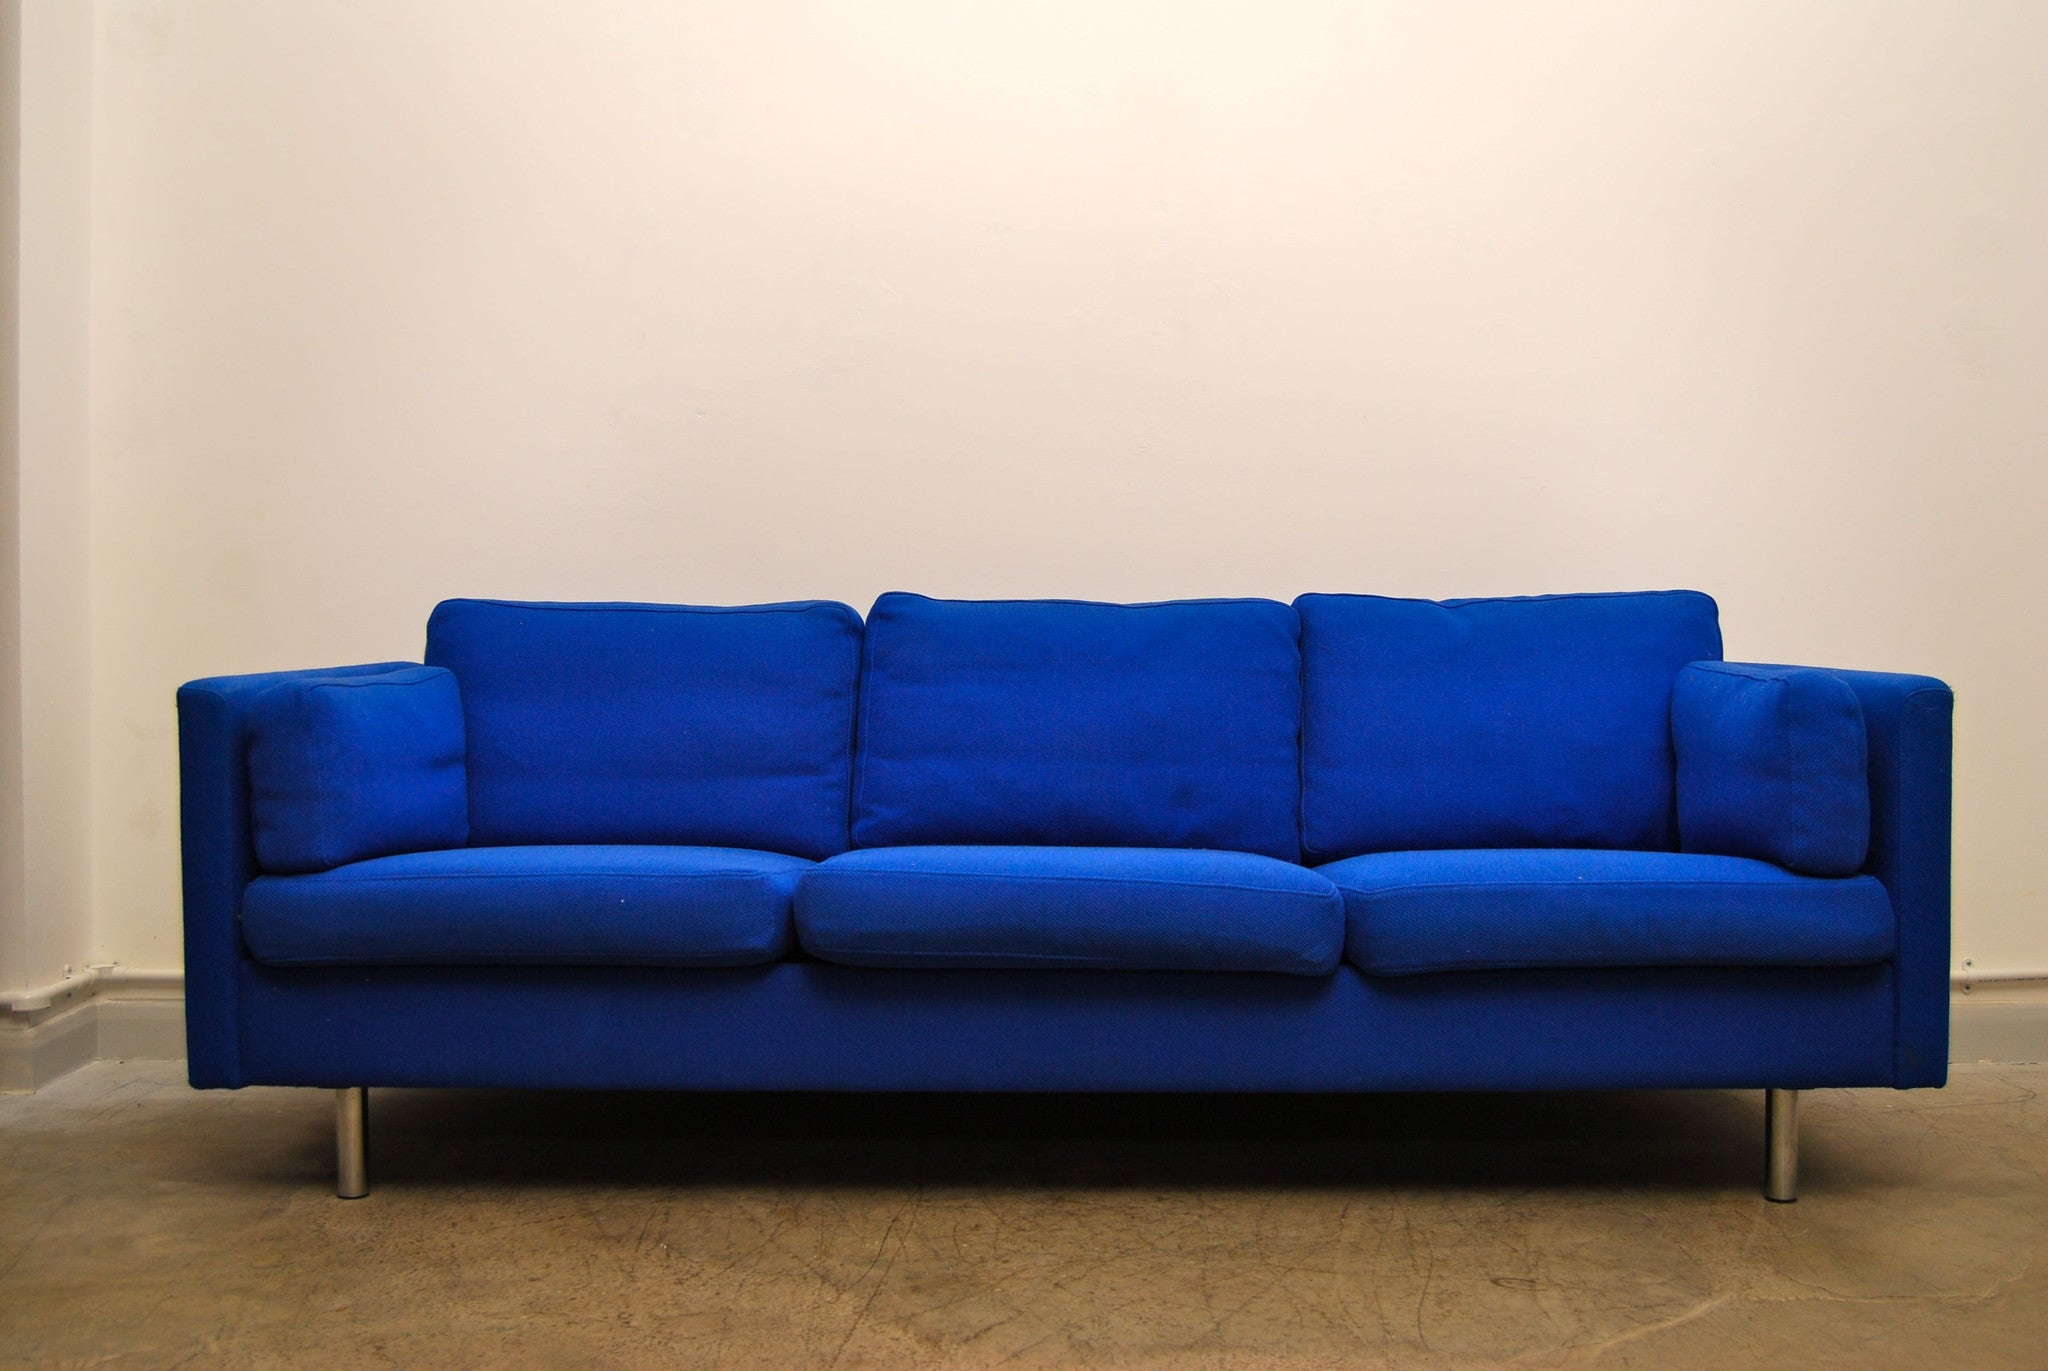 Three seat sofa by Erik Jorgensen